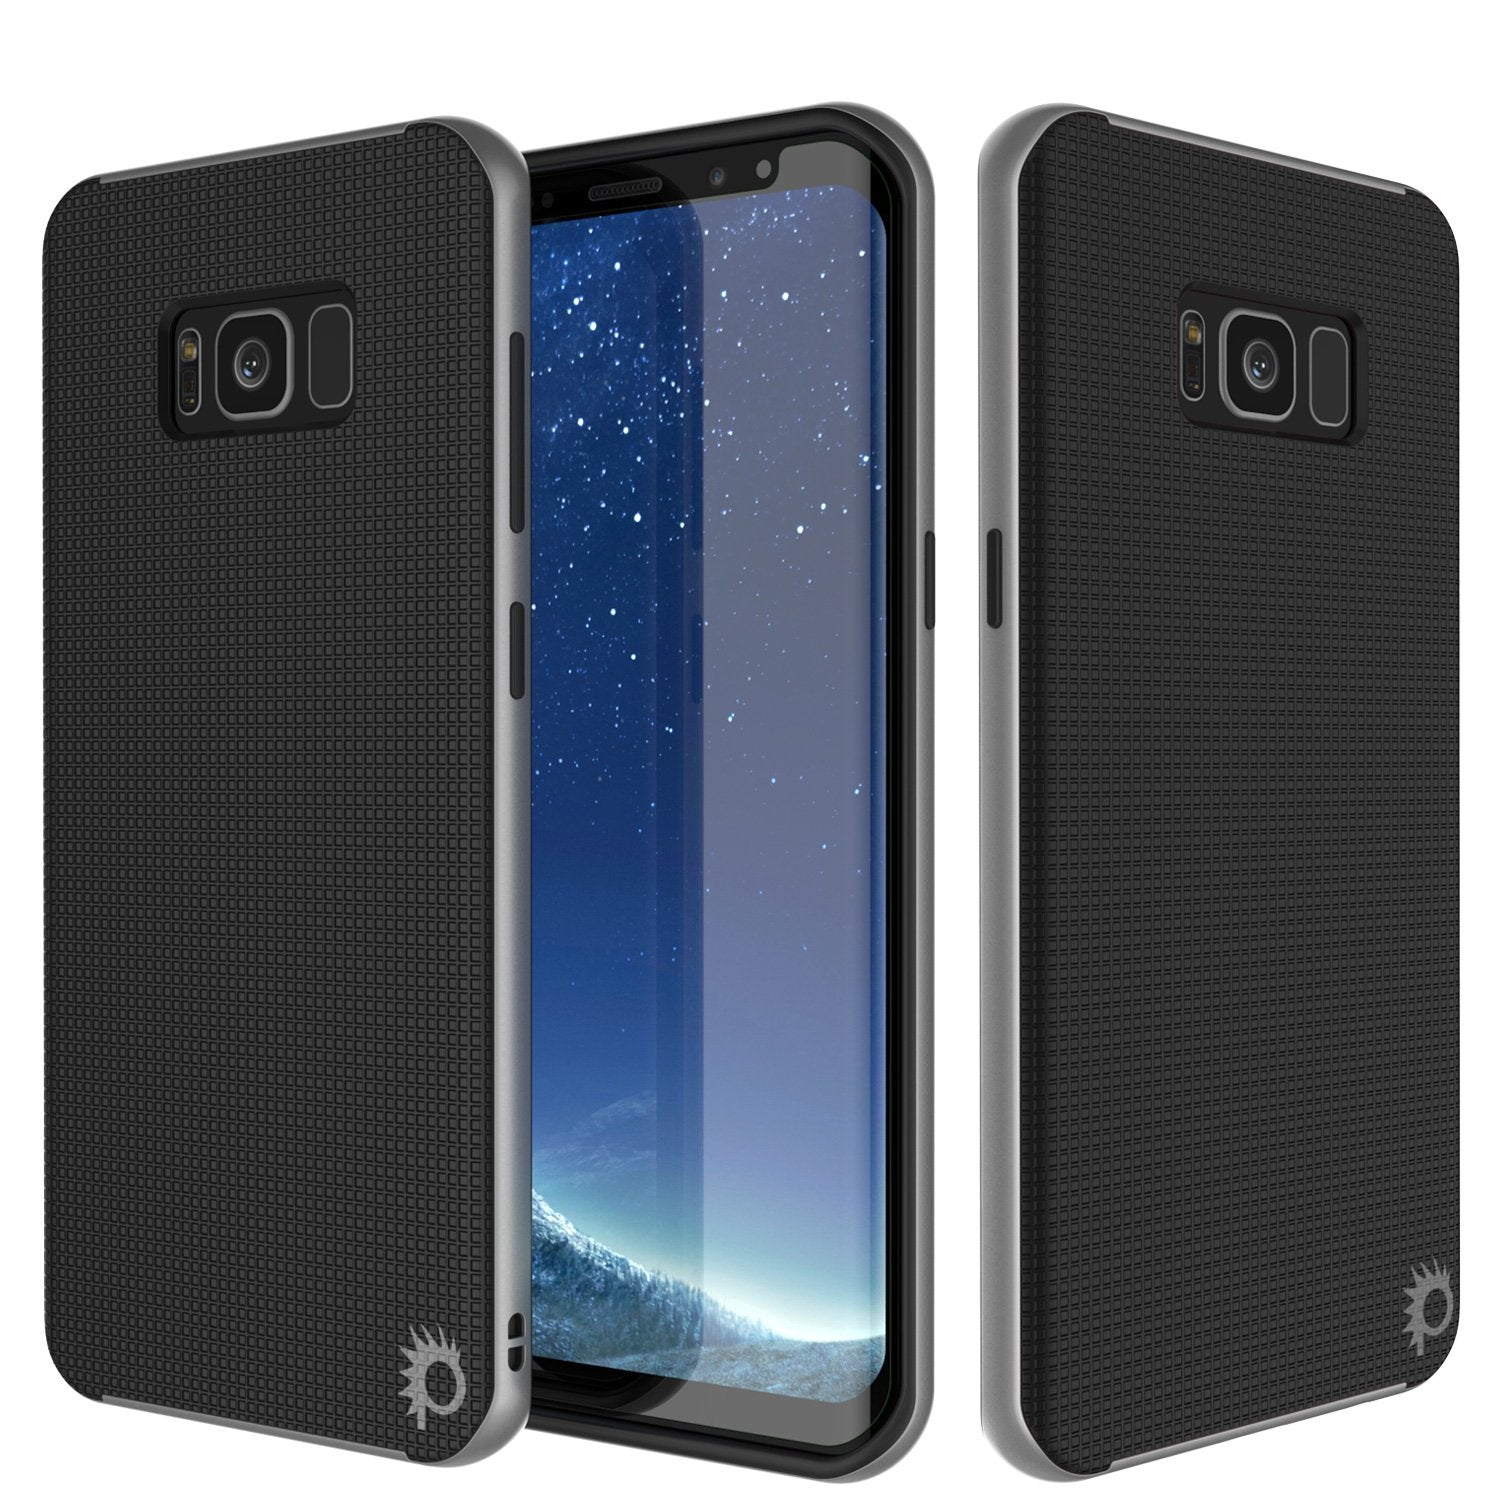 Galaxy S8 Case, PunkCase [Stealth Series] Hybrid 3-Piece Shockproof Dual Layer Cover [Non-Slip] [Soft TPU + PC Bumper] with PUNKSHIELD Screen Protector for Samsung S8 Edge [Silver]